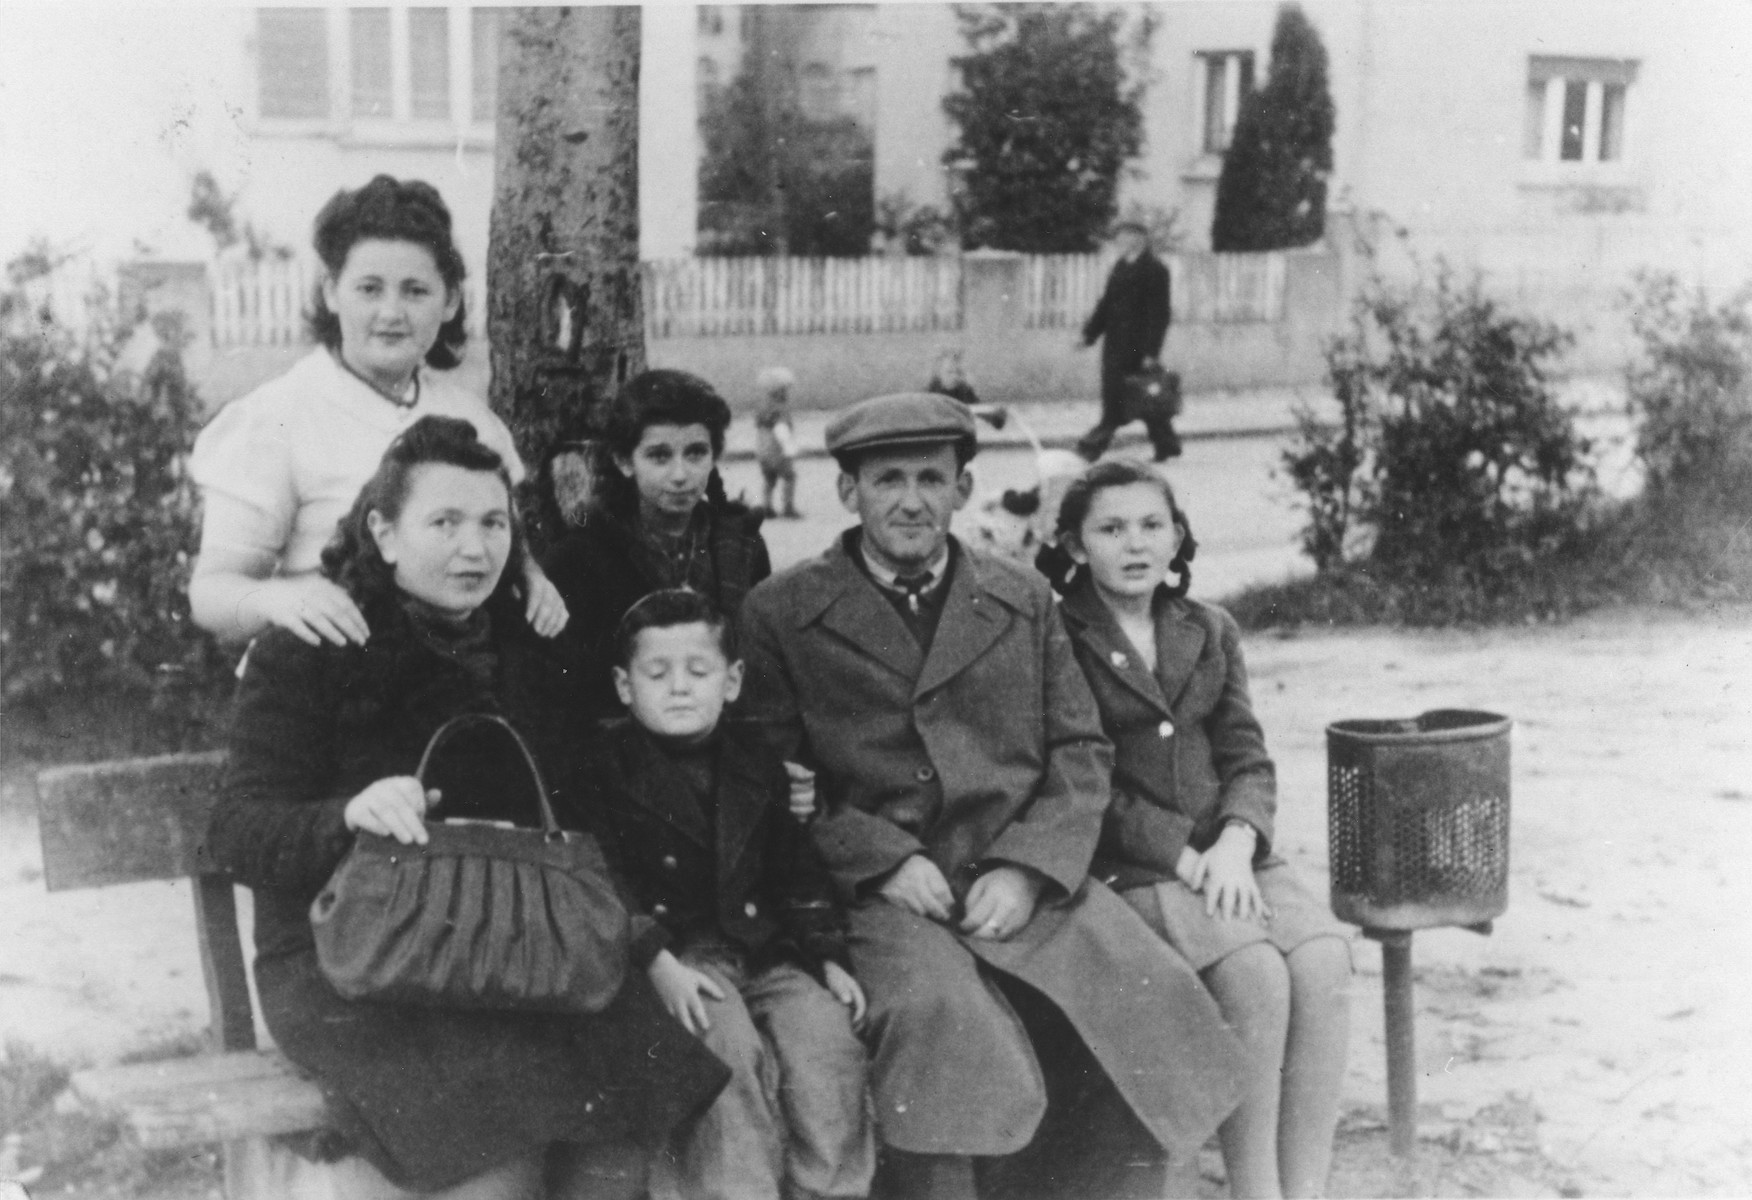 The Rajs family poses on an outdoor bench in the Ulm displaced persons camp.  Standing left to right are Chuma Rajs and Yanka Galler.  Seated left to right are Chaja, Srulek, Hershel and Lila Rajs.